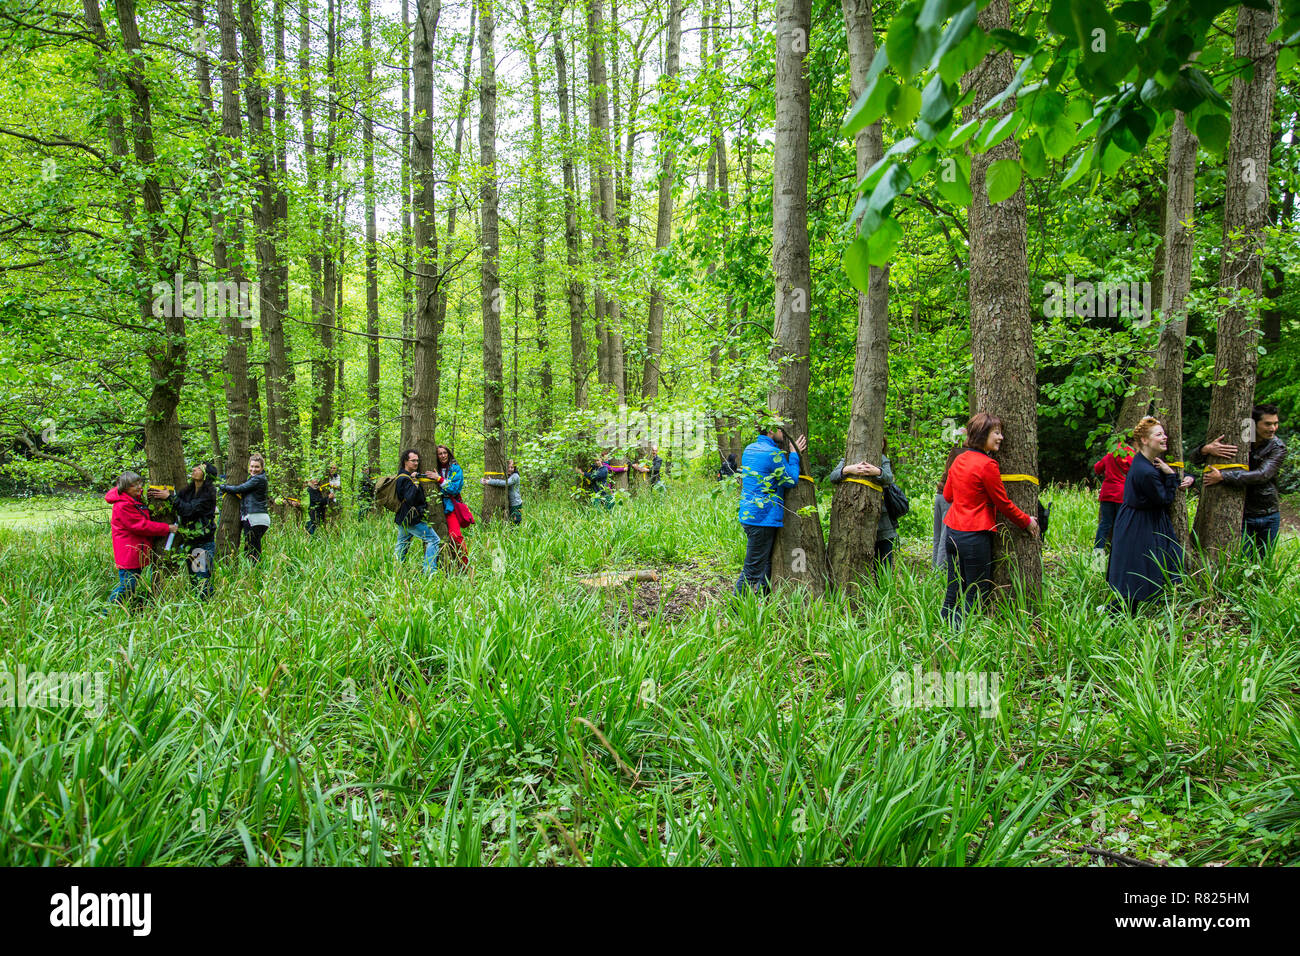 World record in tree hugging, initiative and record attempt of the WWF, 848 people hugged trees at the same time, Grugapark - Stock Image